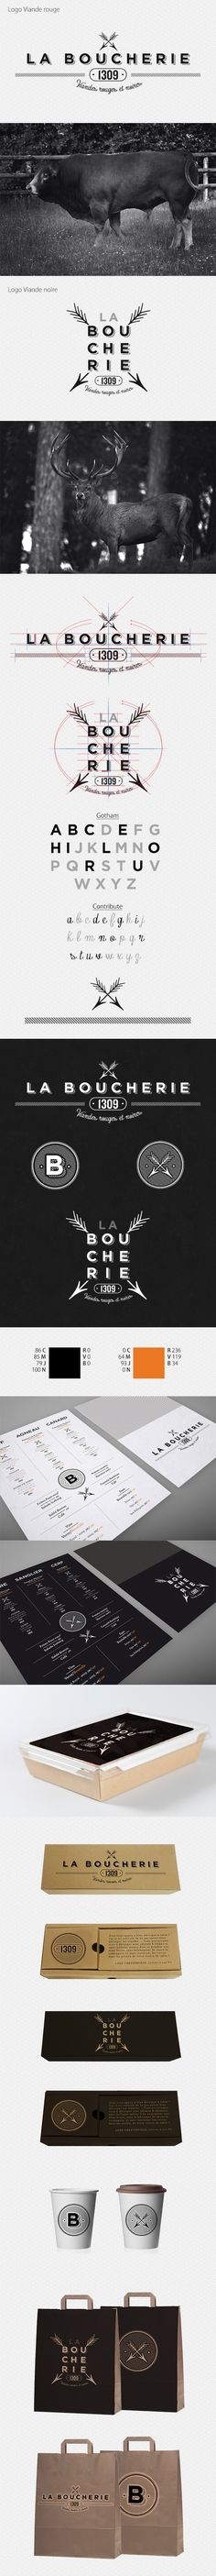 La boucherie by Thomas Roger-Veyer, via Behance